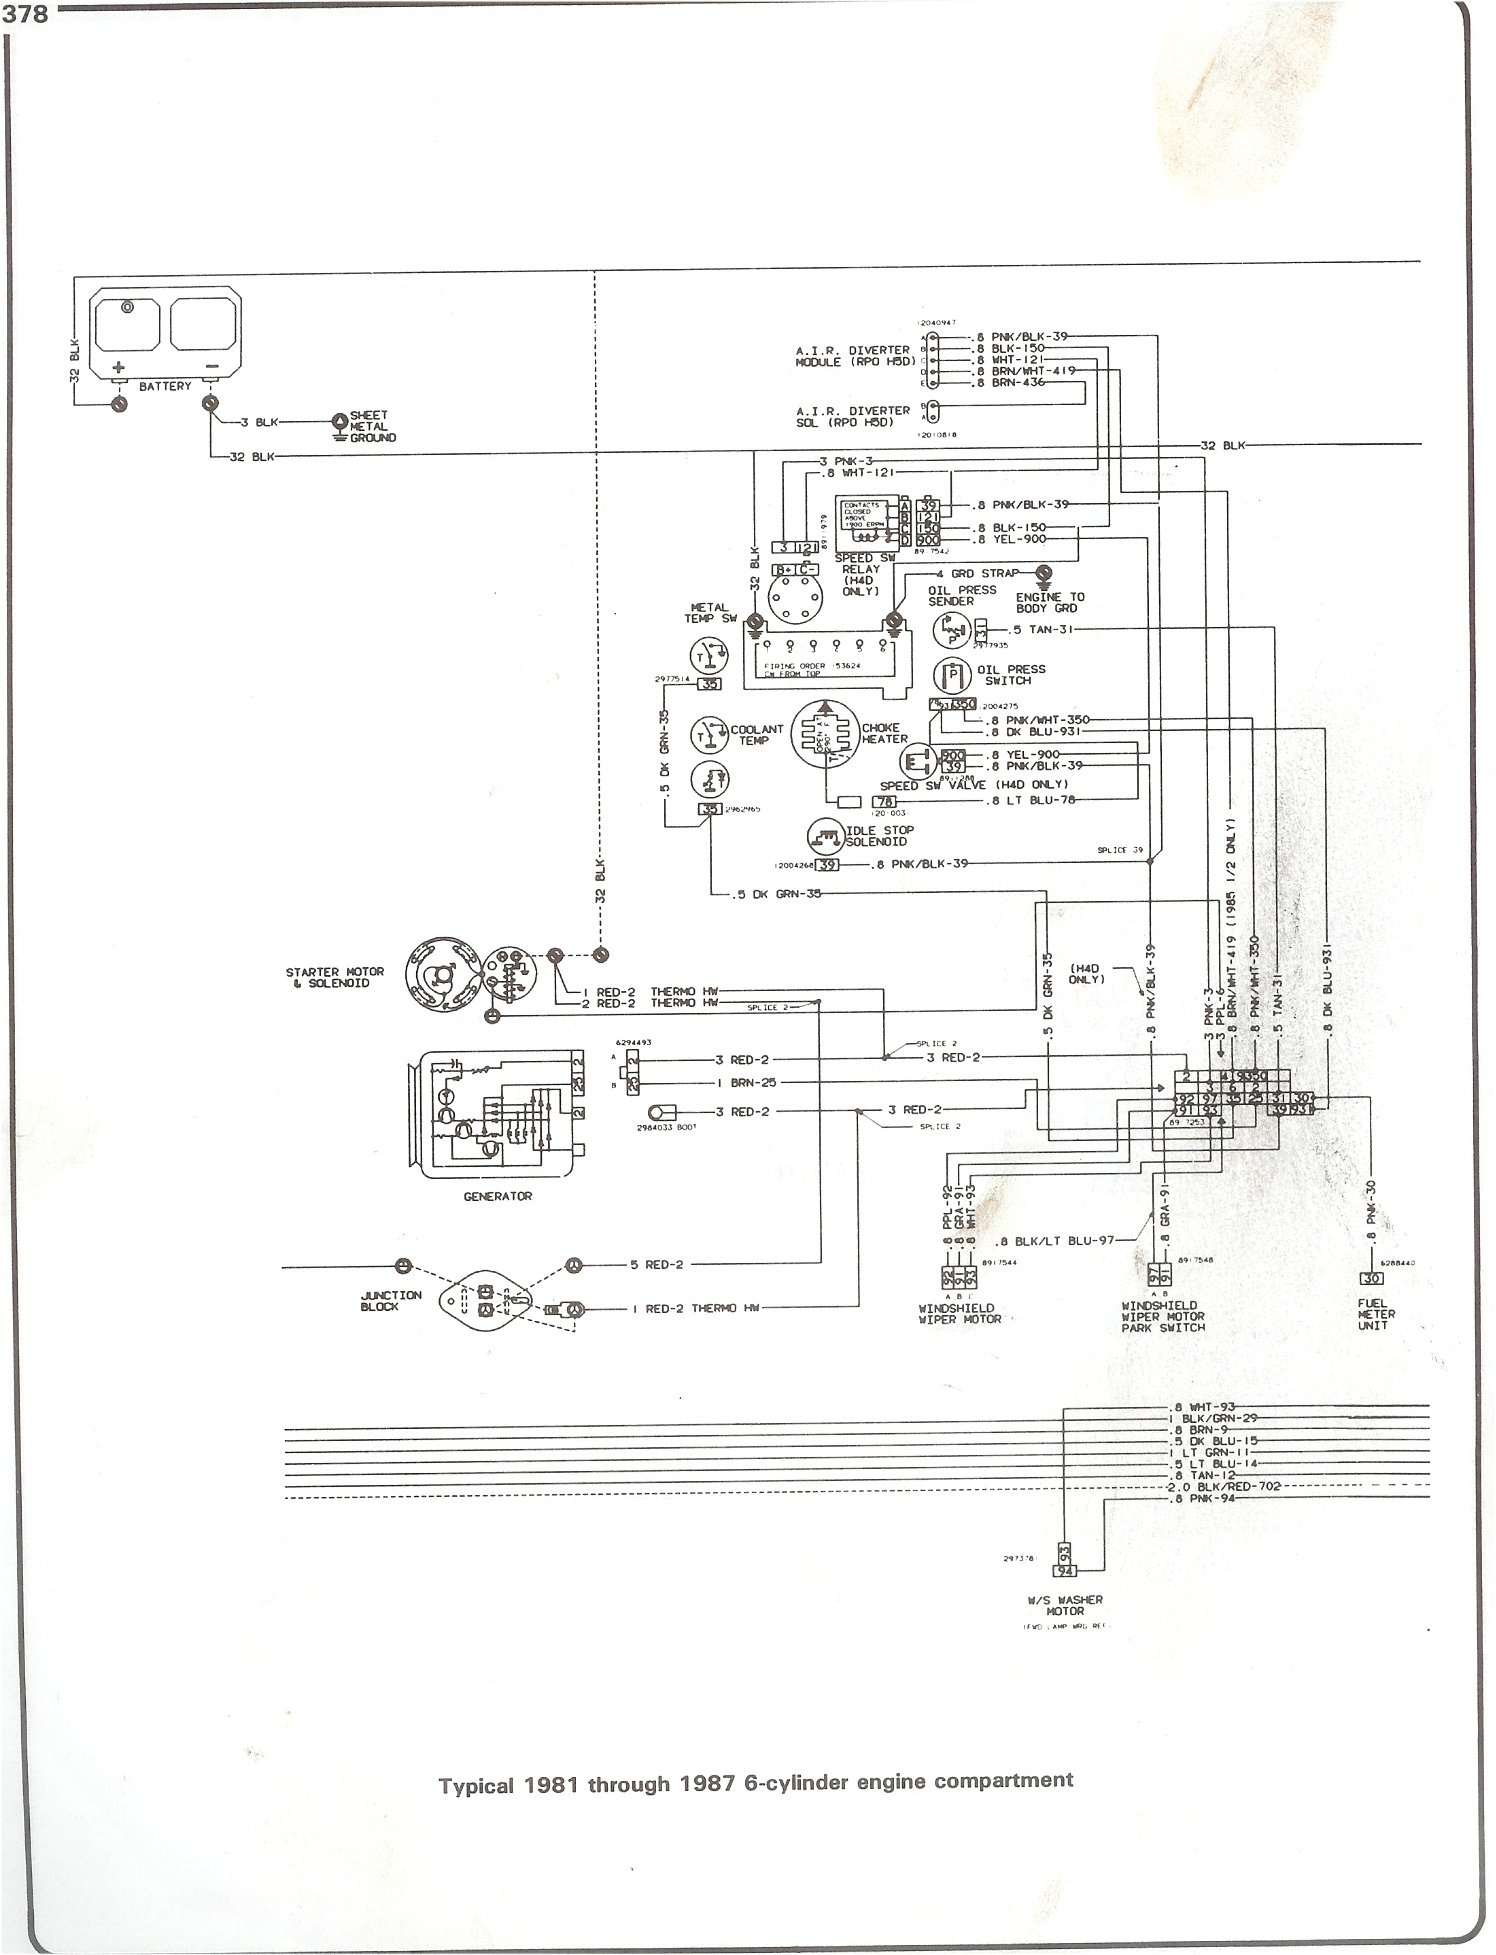 Complete 73 87 Wiring Diagrams Diagram 3 Switches 1 Box 81 I6 Engine Compartment